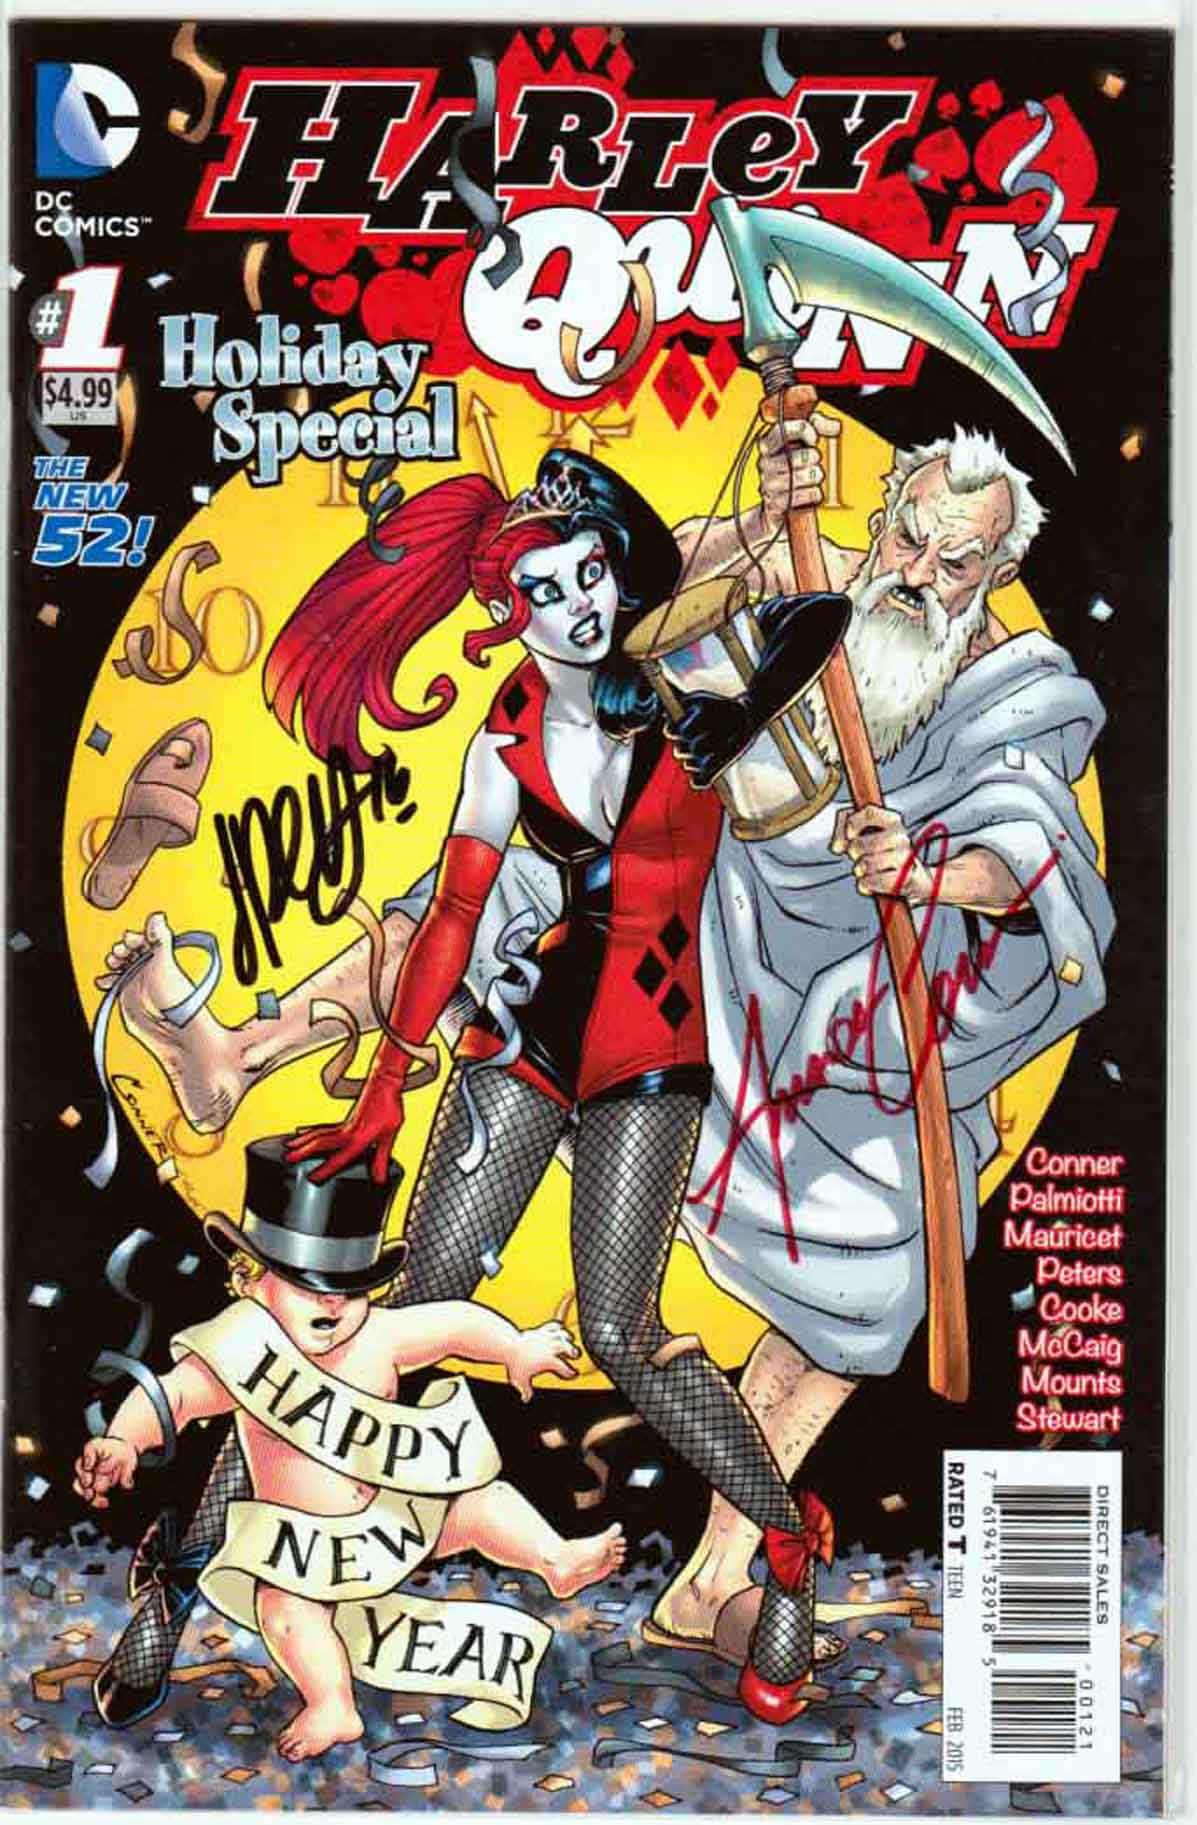 Harley Quinn Holiday Special Variant Amanda Conner New Years Eve Cover Signed By Amanda Conner And Jimmy Palmiotti (2015) DC Comics We got you a present, comics fans - a gut-busting (sometimes literally) collection of short stories featuring Harley and her special brand of holiday cheer!